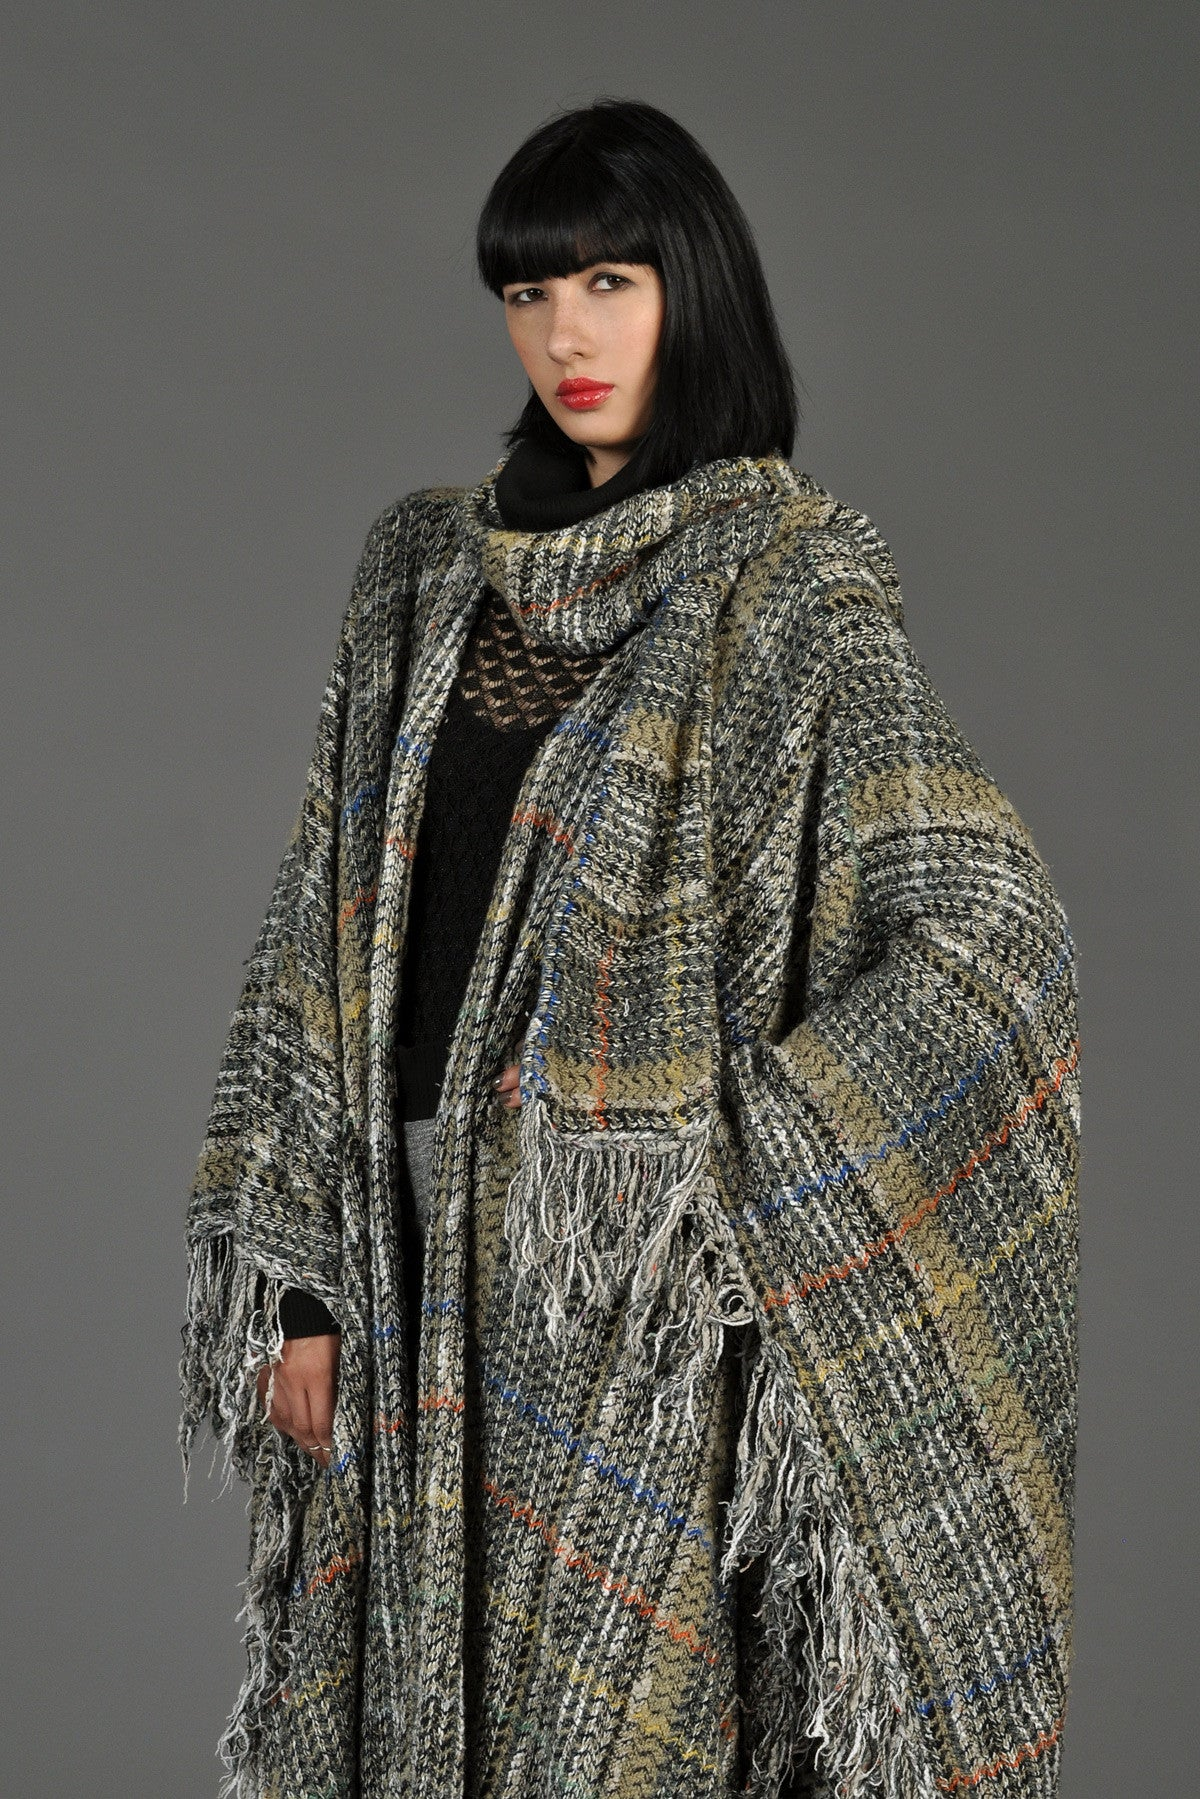 1970s Woven Shaggy Blanket Coat With Scarf Bustown Modern